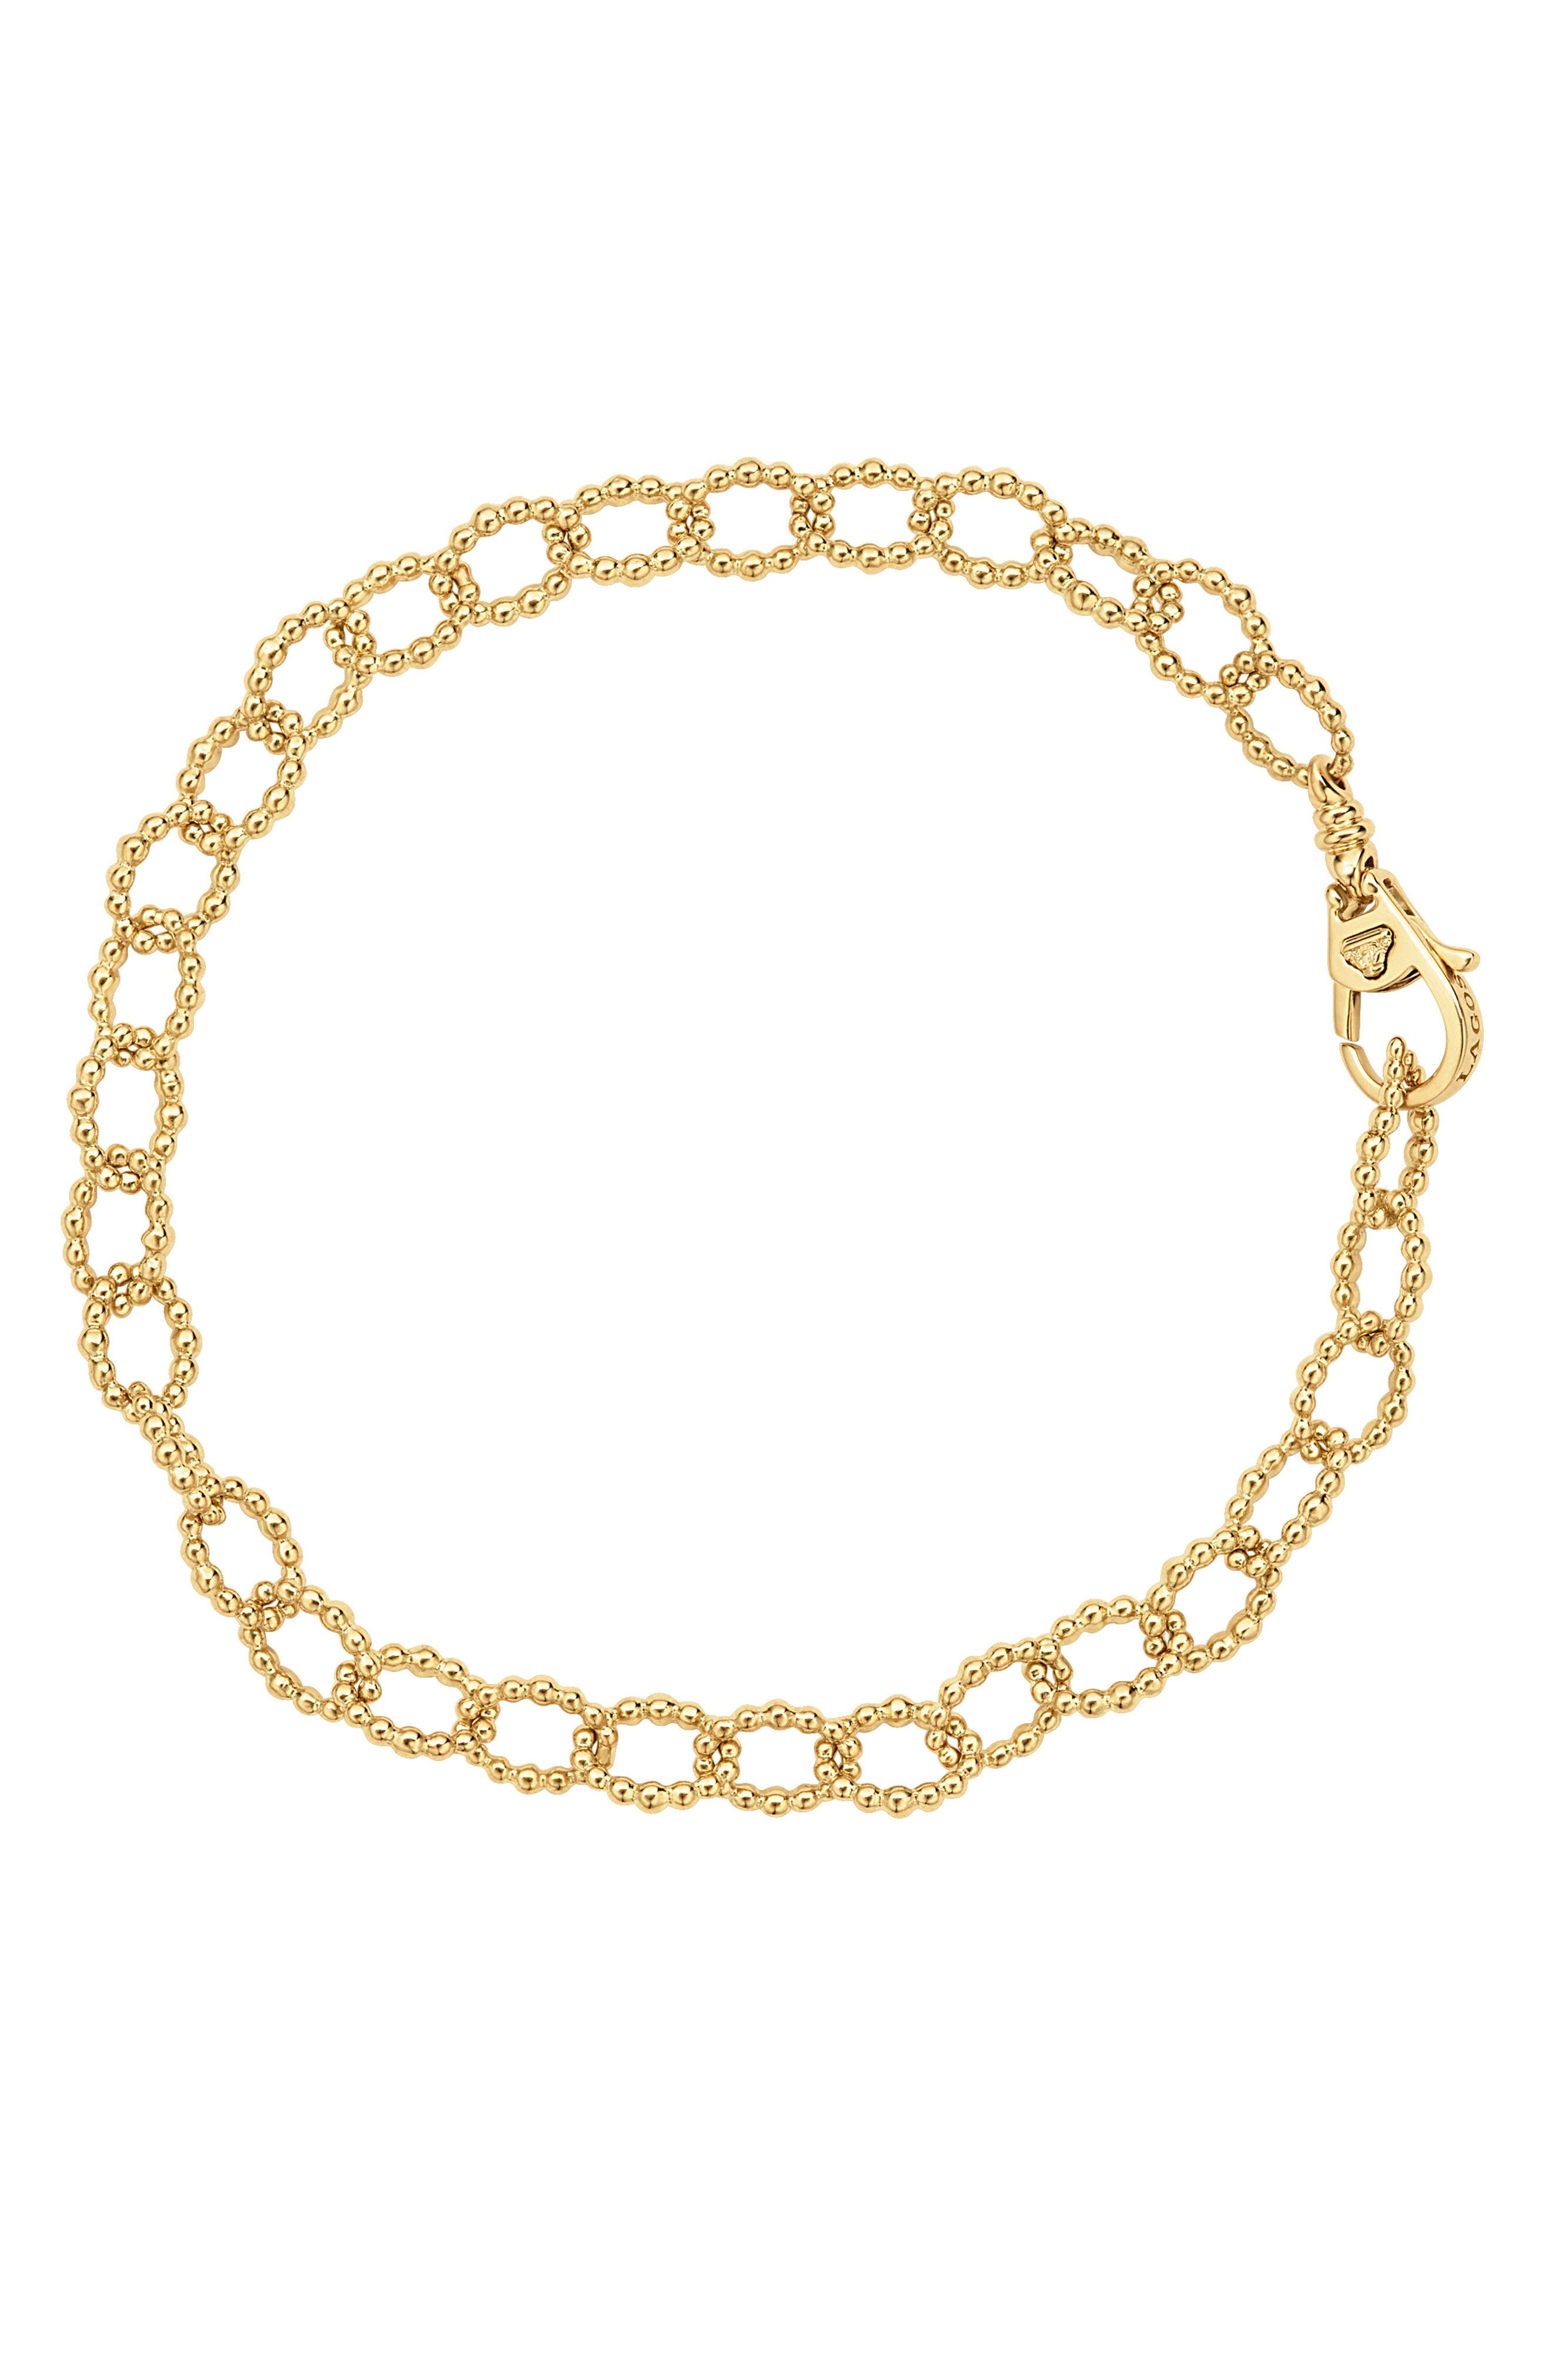 Caviar Link Bracelet,                             Alternate thumbnail 2, color,                             GOLD